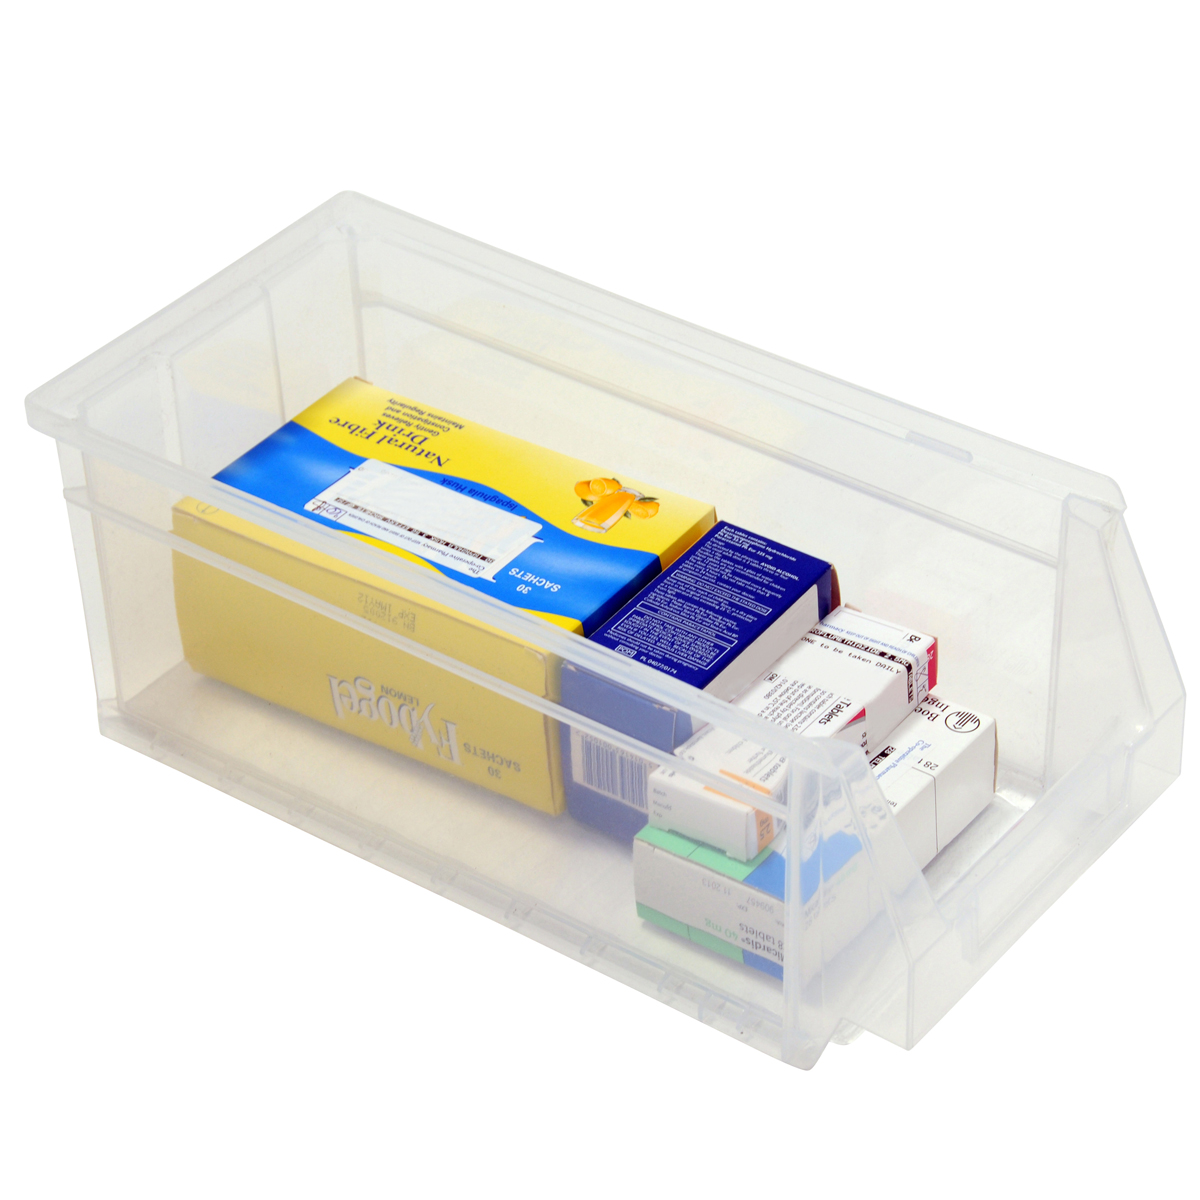 Box of 10 Premium Plastic Bins 130h x160w x336d CLEAR